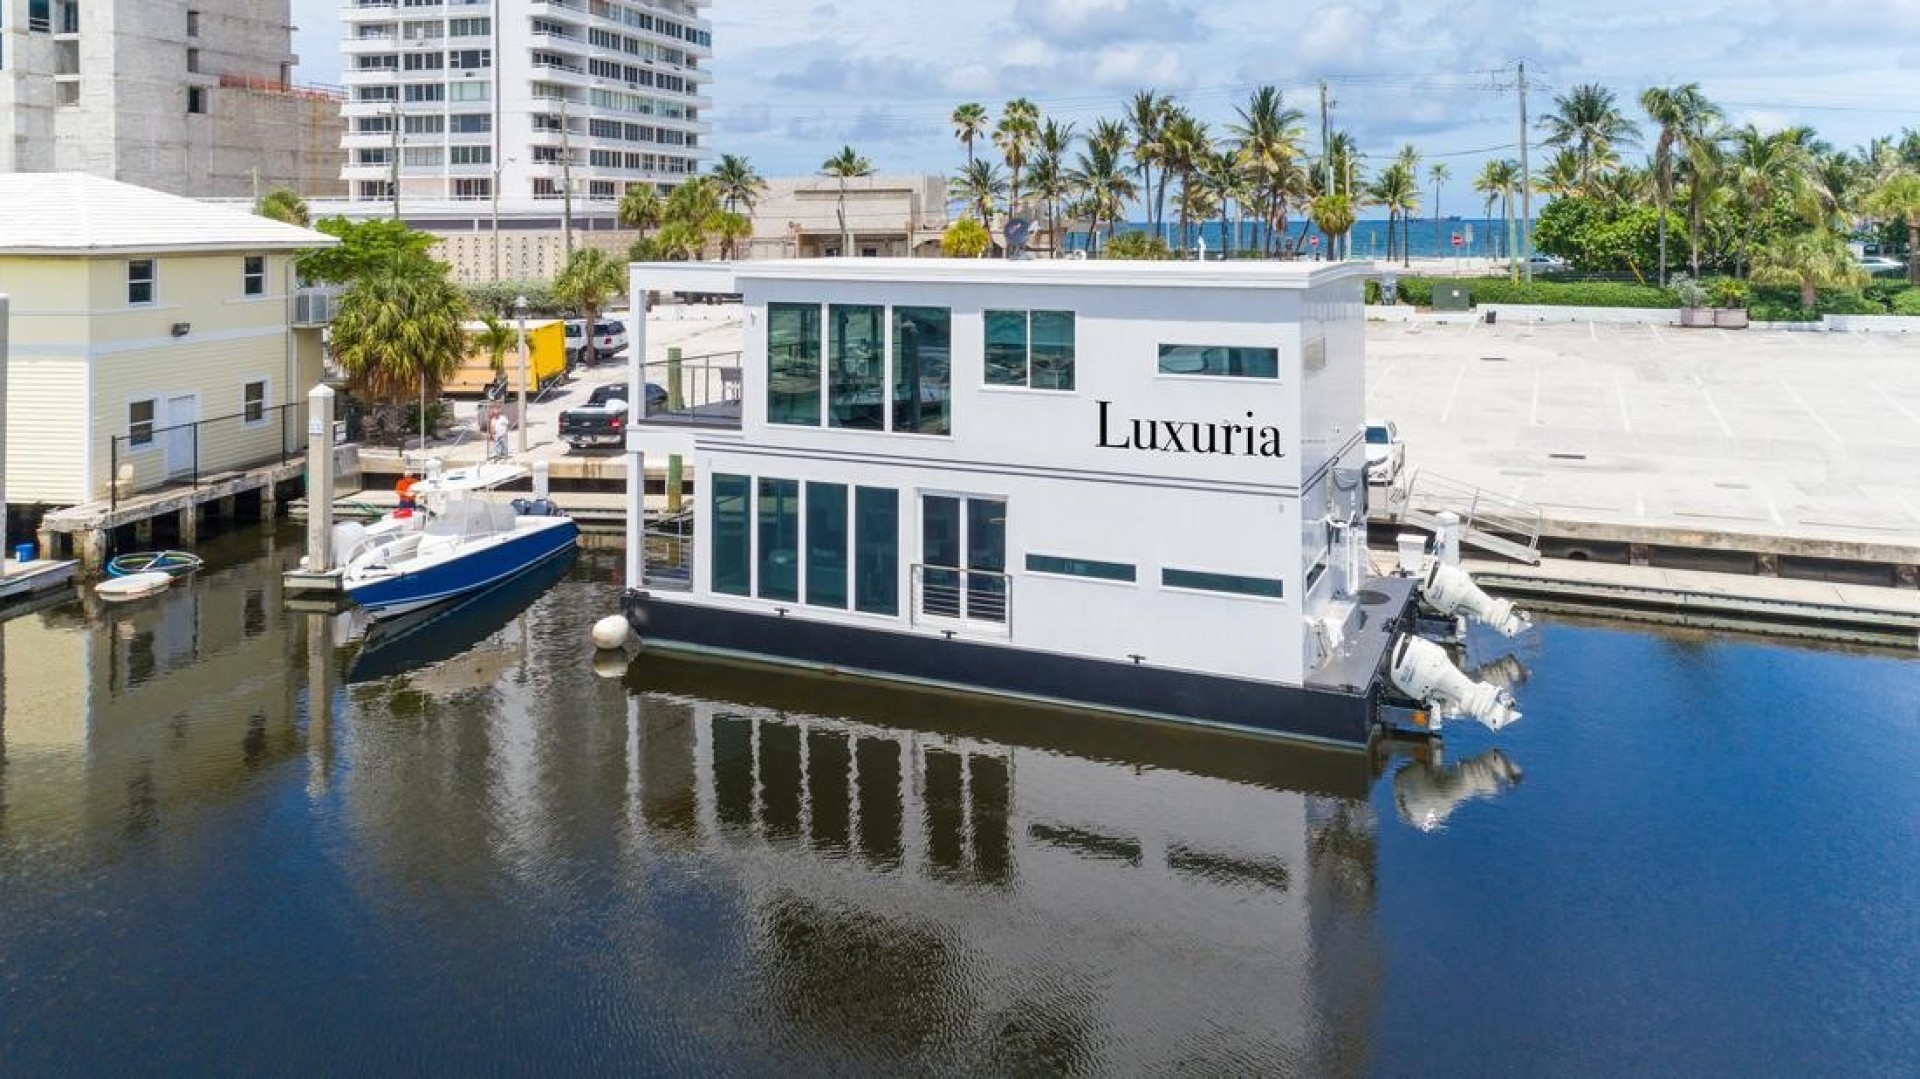 Global Boatworks-Luxury House Yacht 2017-Luxuria Ft. Lauderdale-Florida-United States-Luxuria in her $25,000/month Income Producing Slip at Bahia Mar, Ft. Lauderdale, FL-1099594 | Thumbnail